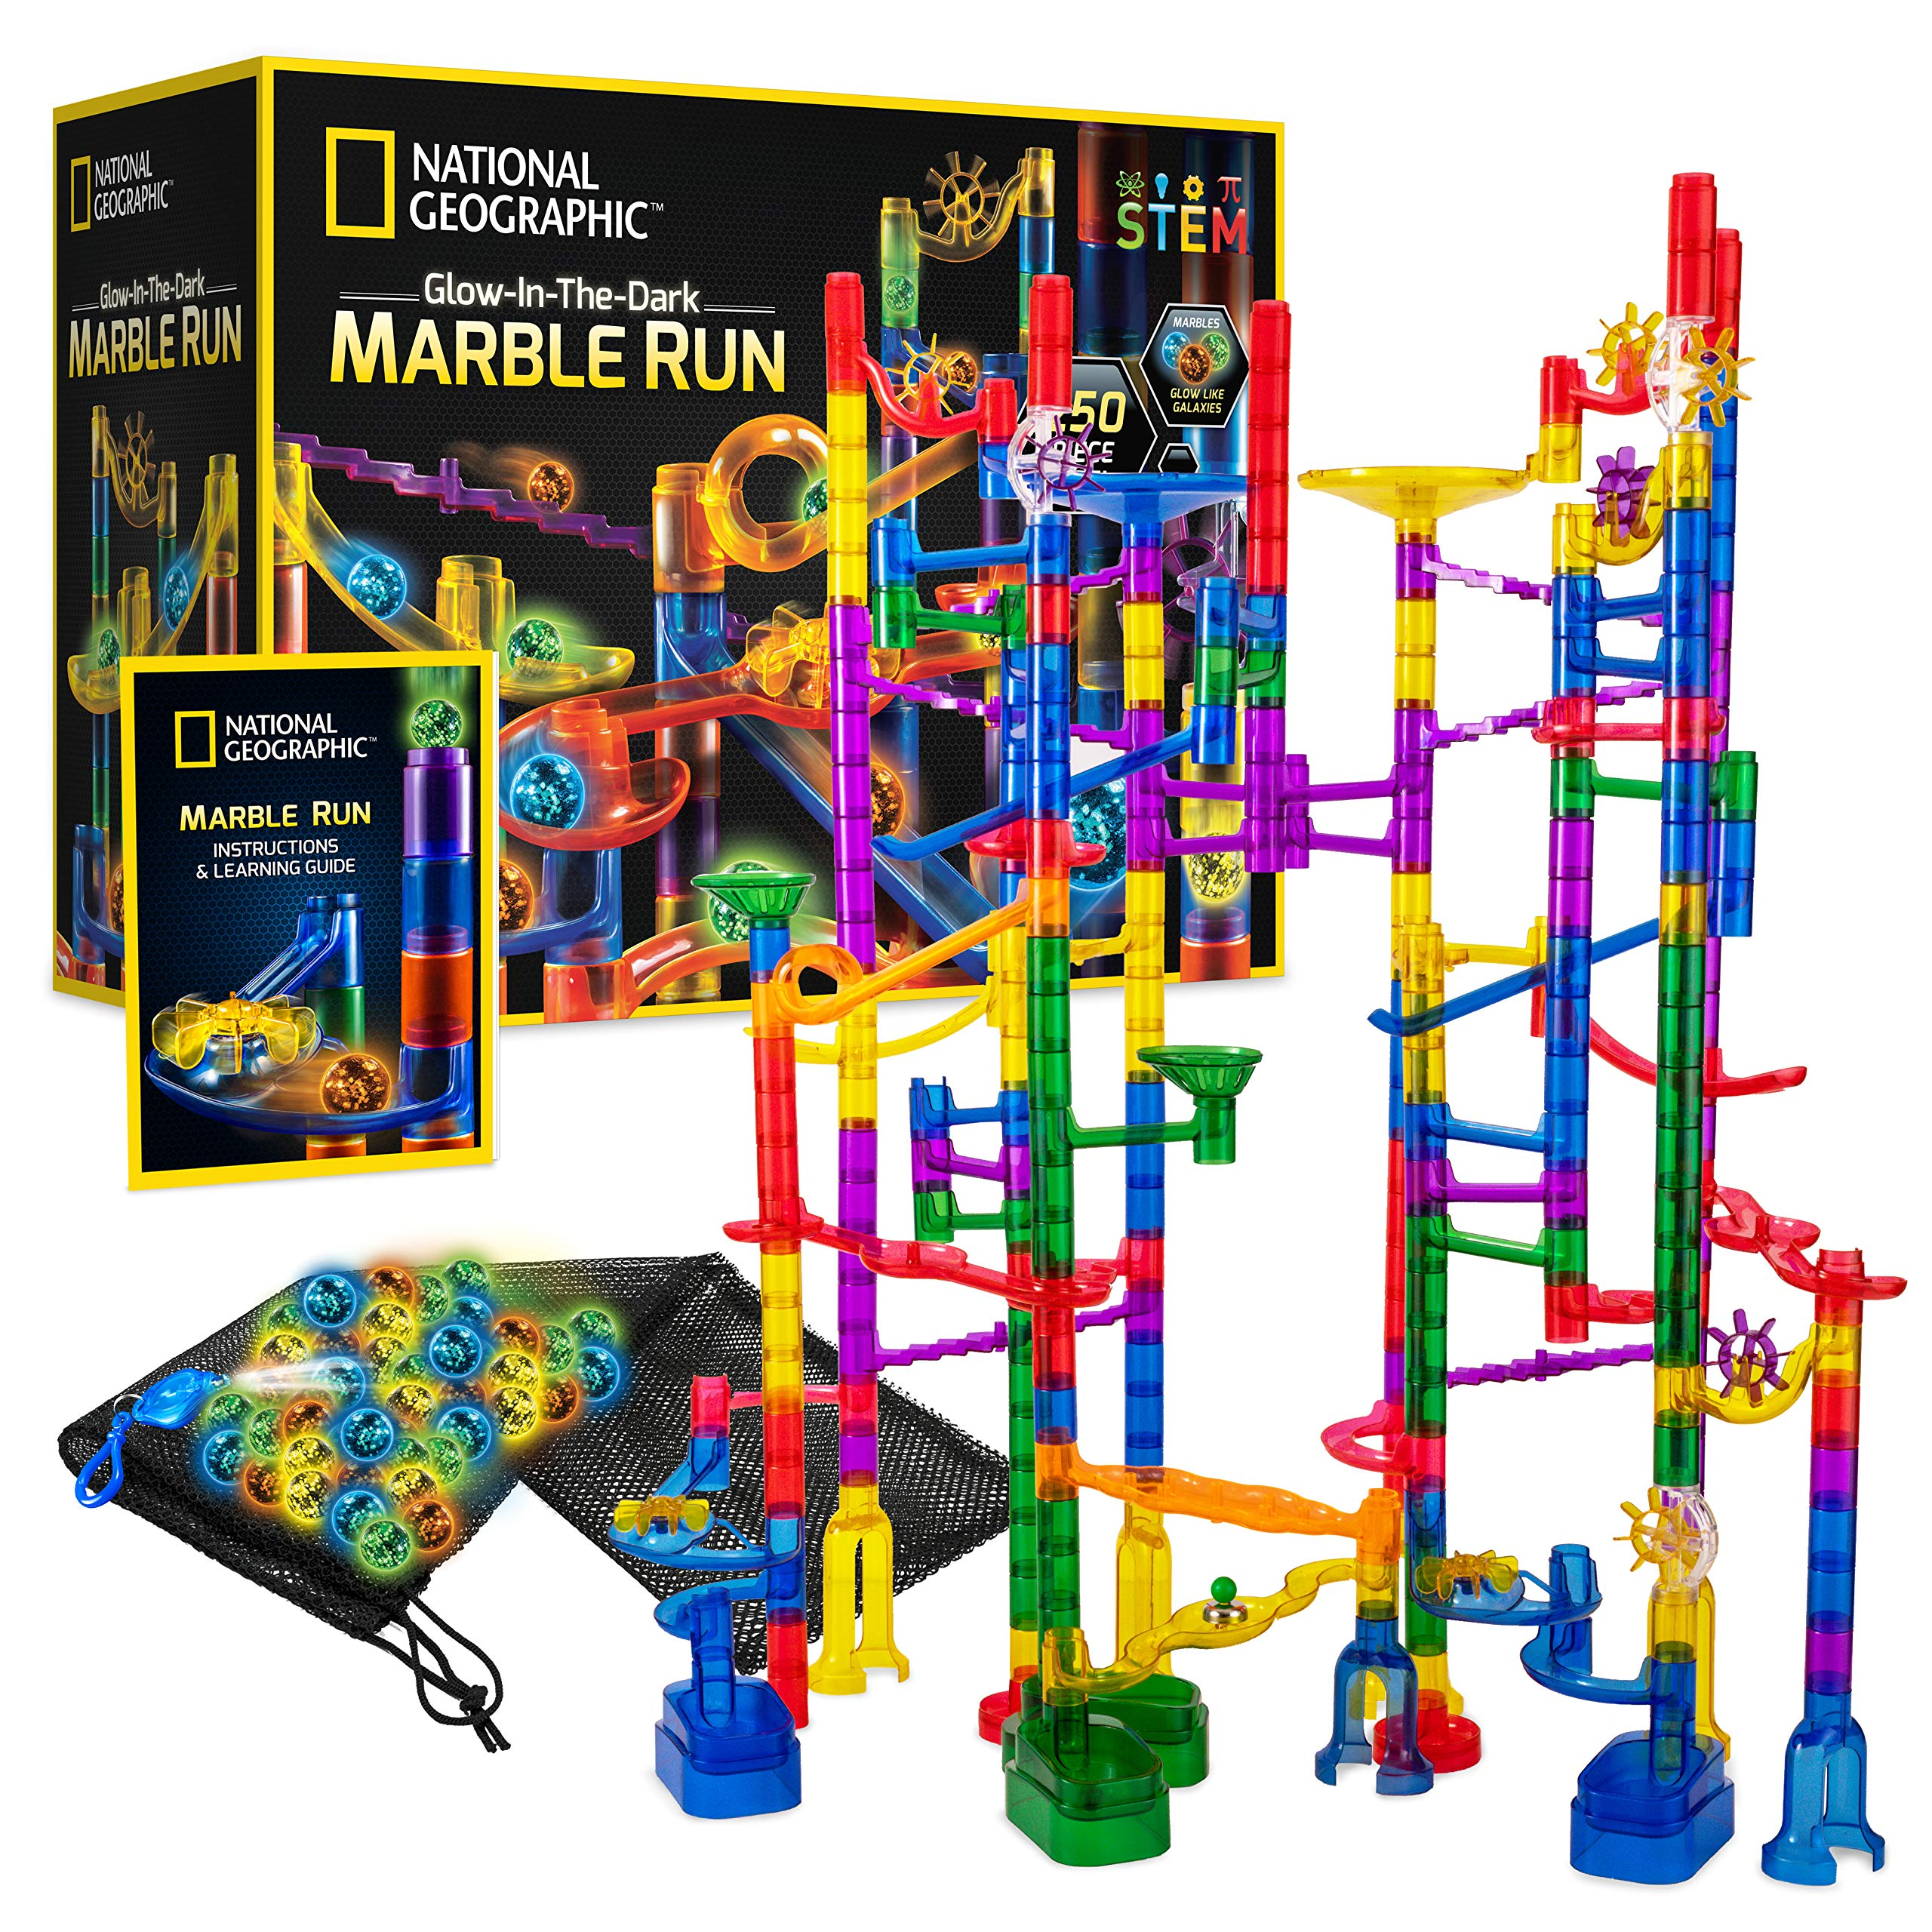 National Geographic Glowing Marble Run – 250 Piece Construction Set with 30 Glow-in-the-Dark Glass Marbles, Mesh Storage Bag, Great Creative STEM Toy for Girls and Boys